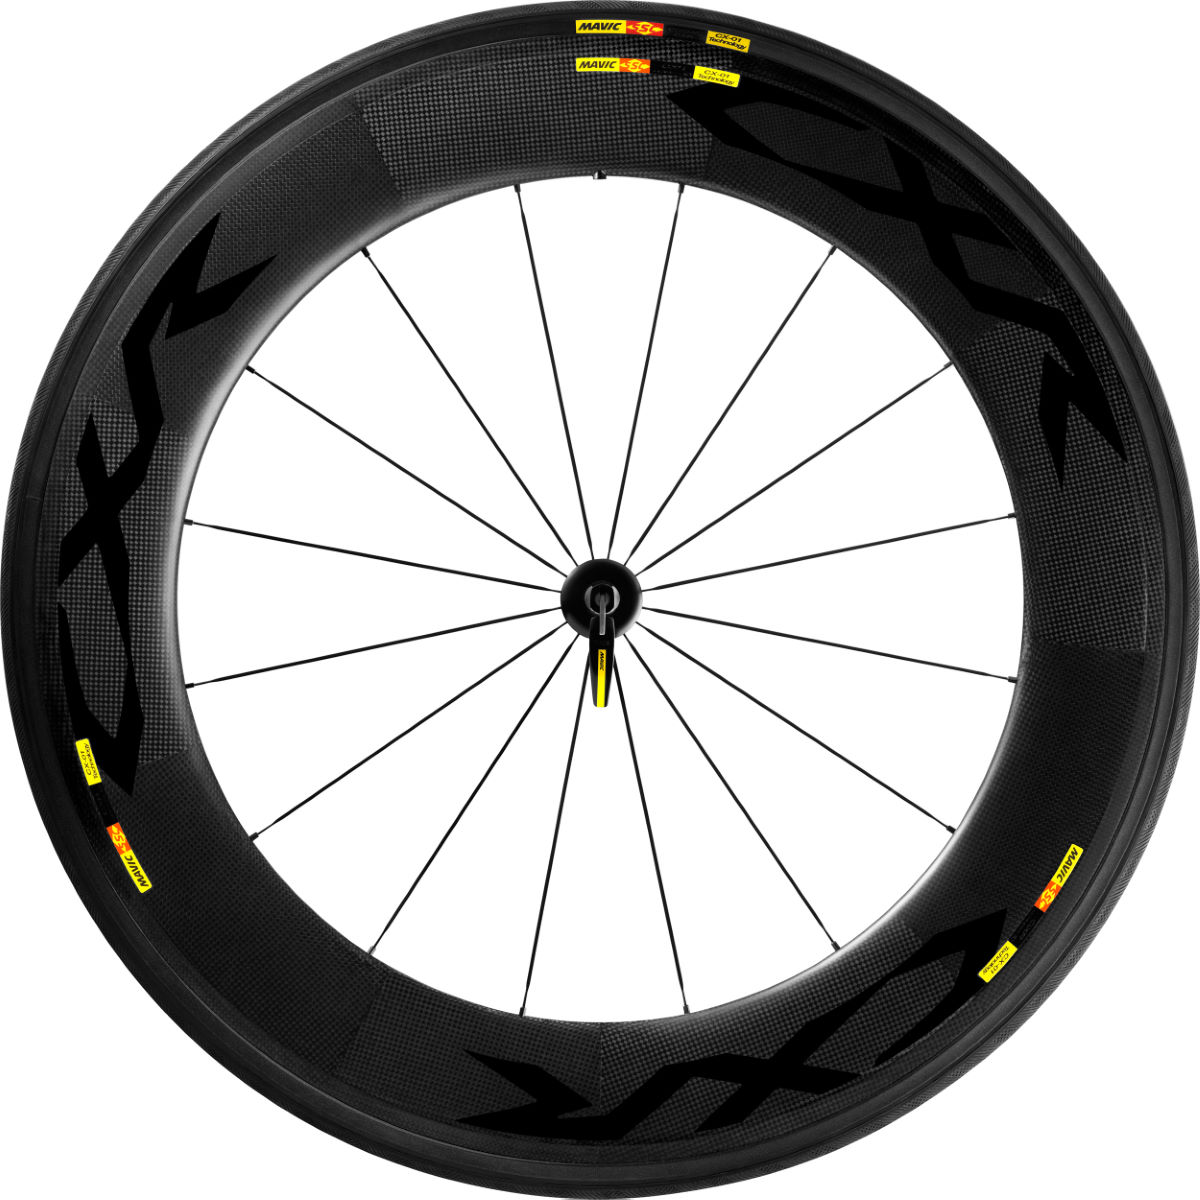 Roue avant à boyau Mavic CXR Ultimate 80 (carbone) - 700c - Tubular Noir Roues performance